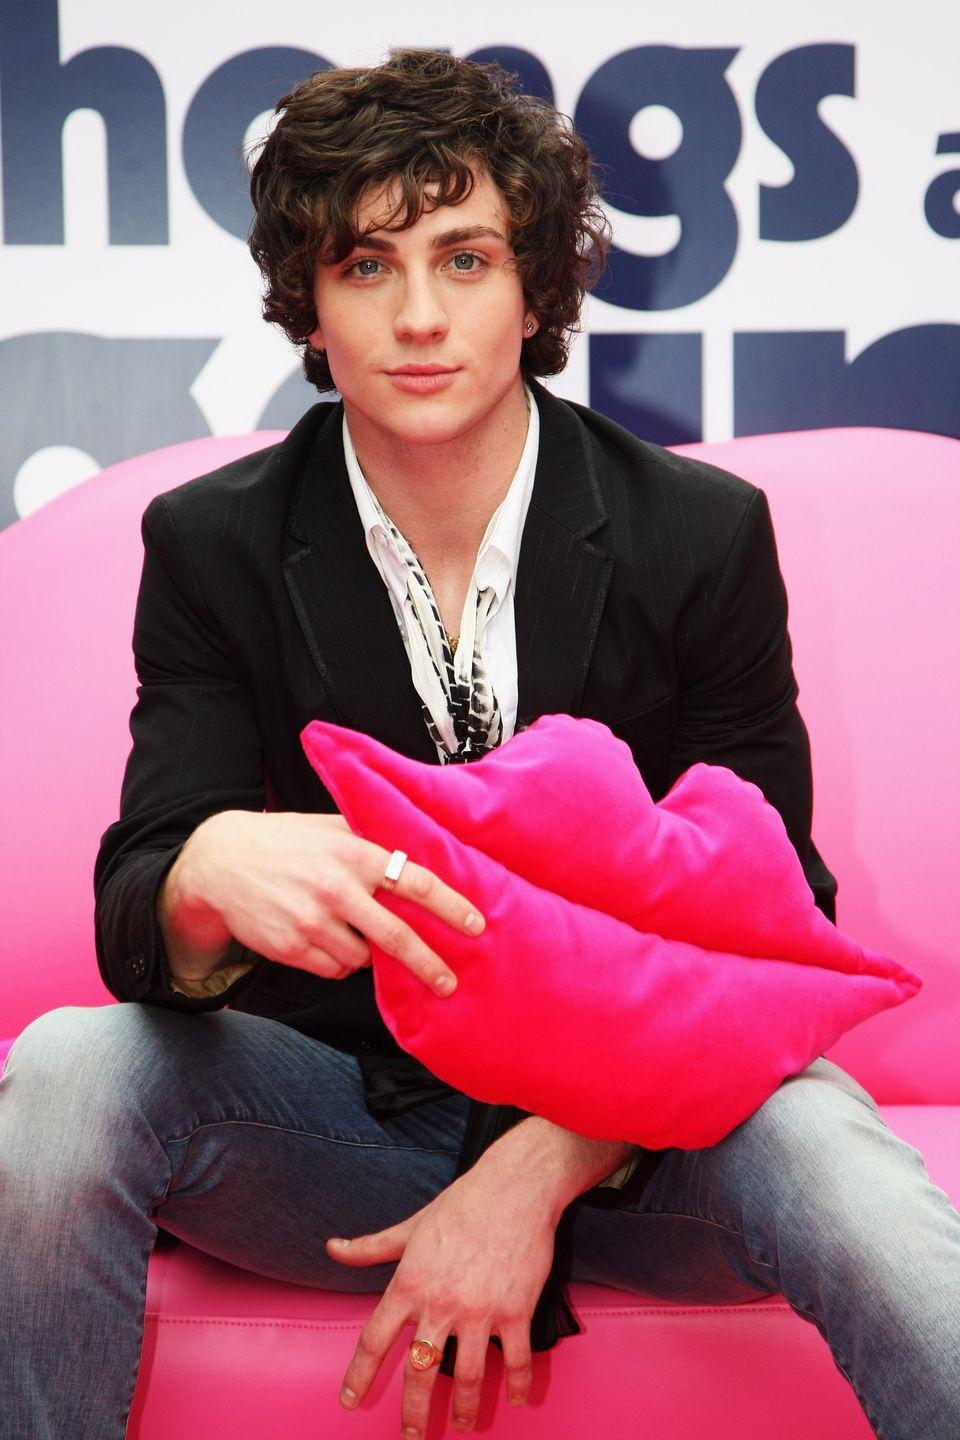 <p>The British actor did star in some TV shows in the early parts of his career, but everyone came to know and love him as Robbie in <em>Angus, Thongs and Perfect Snogging</em>. </p>